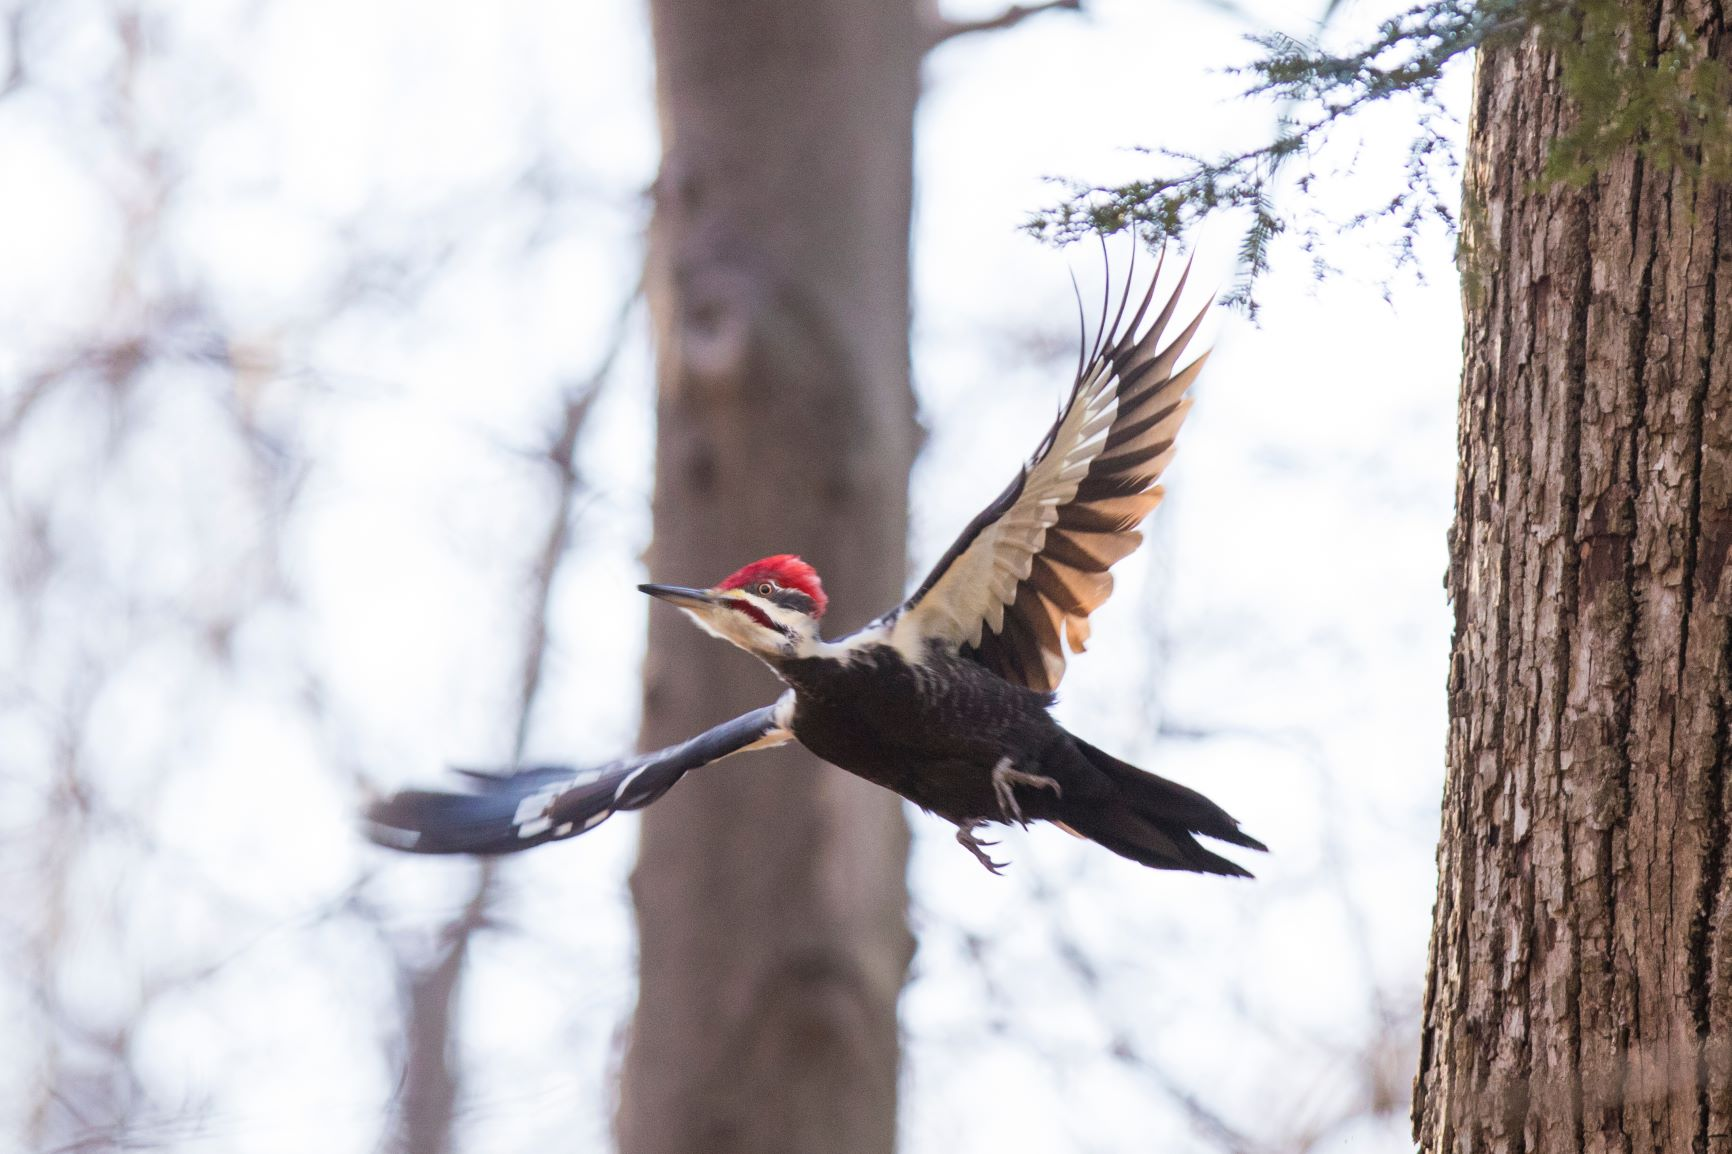 Pileated woodpecker, with its iconic red Mohawk and white striped head, soars among trees.